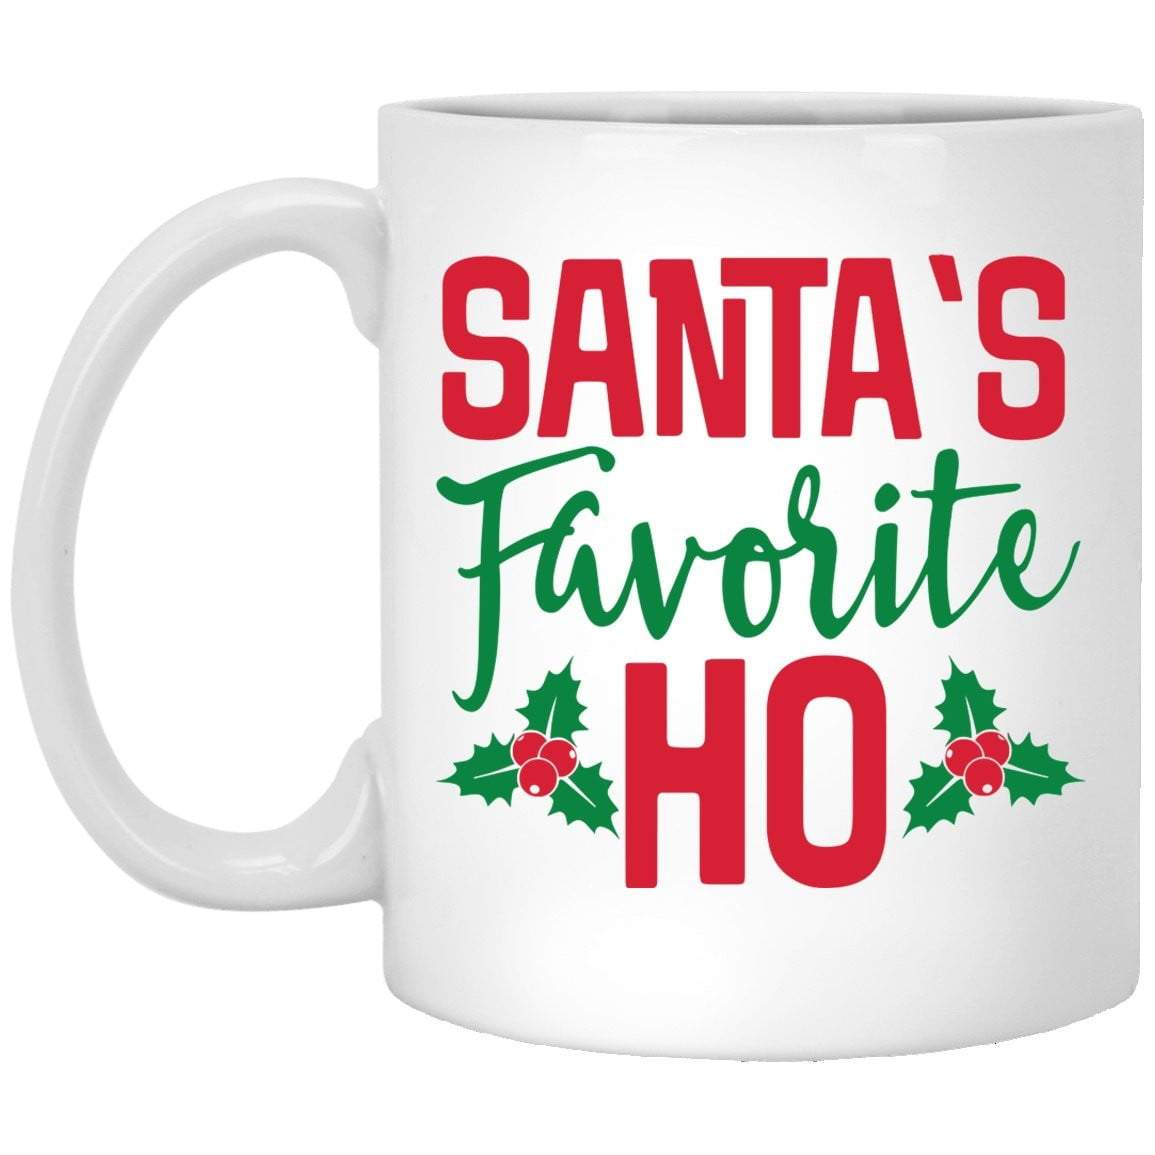 SANTA'S FAVORITE HO Christmas Coffee Mug